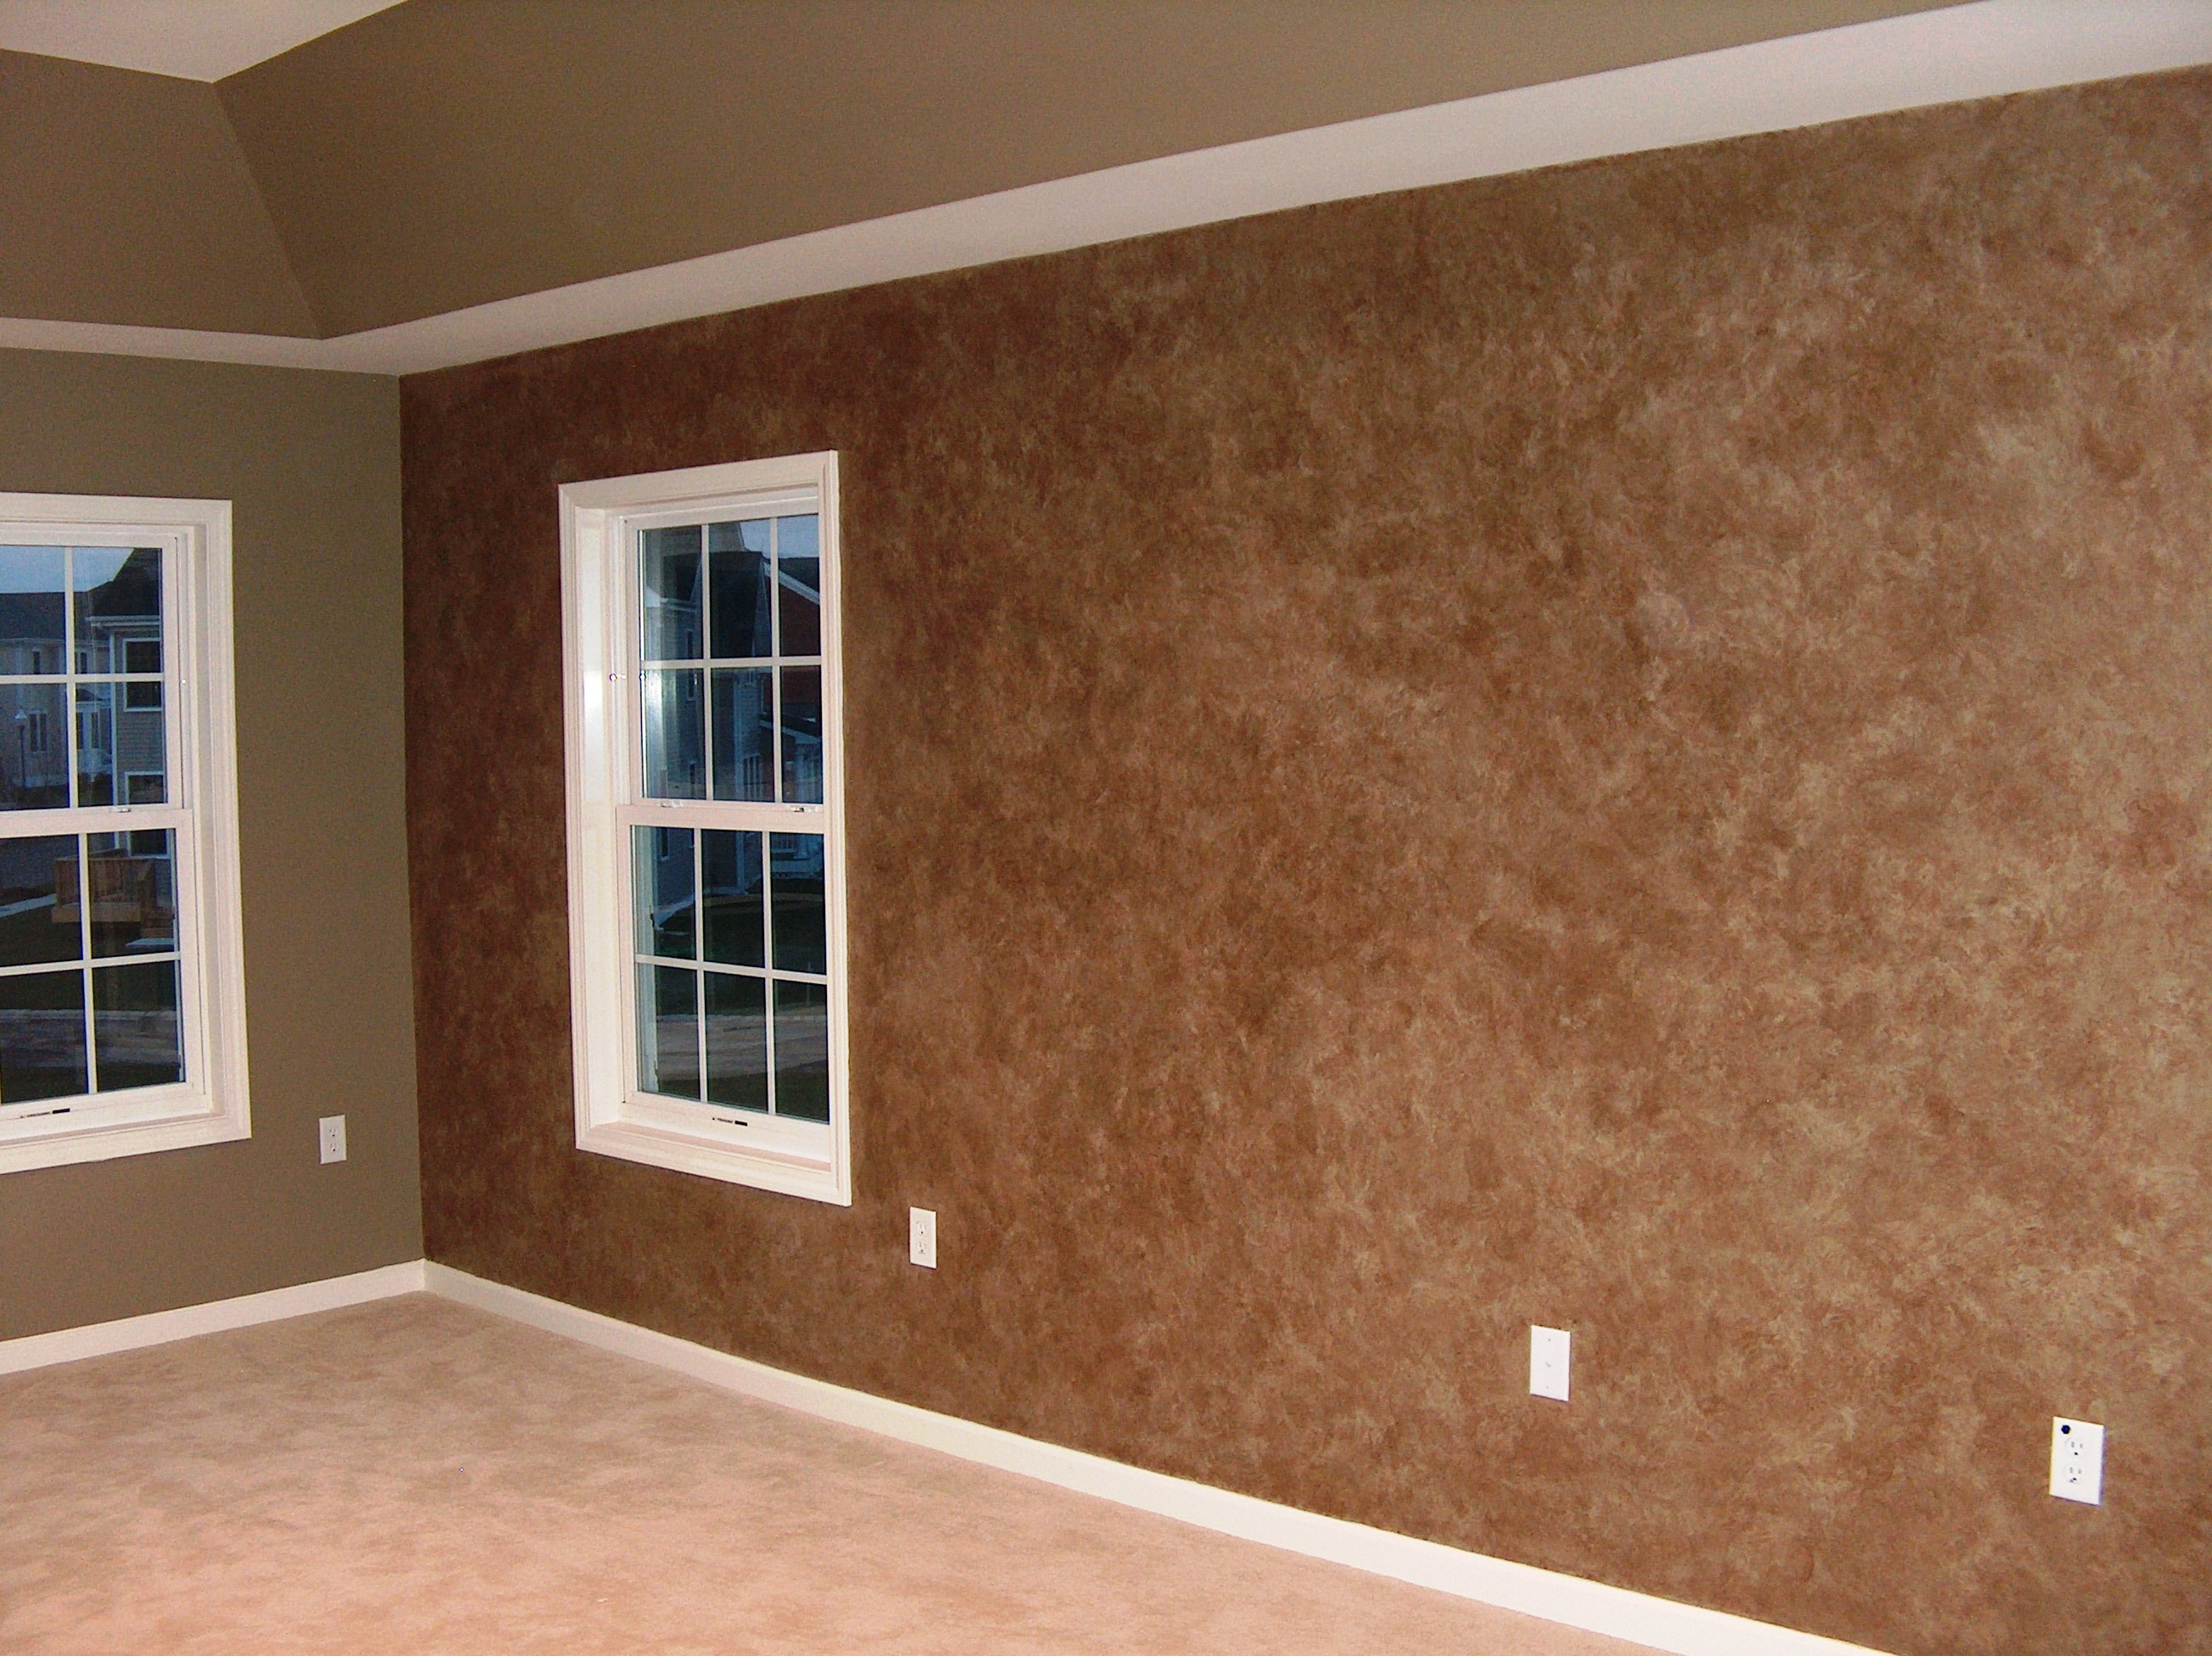 Faux Finish Paint faux finishing, faux painting central nj, freehold, colts neck